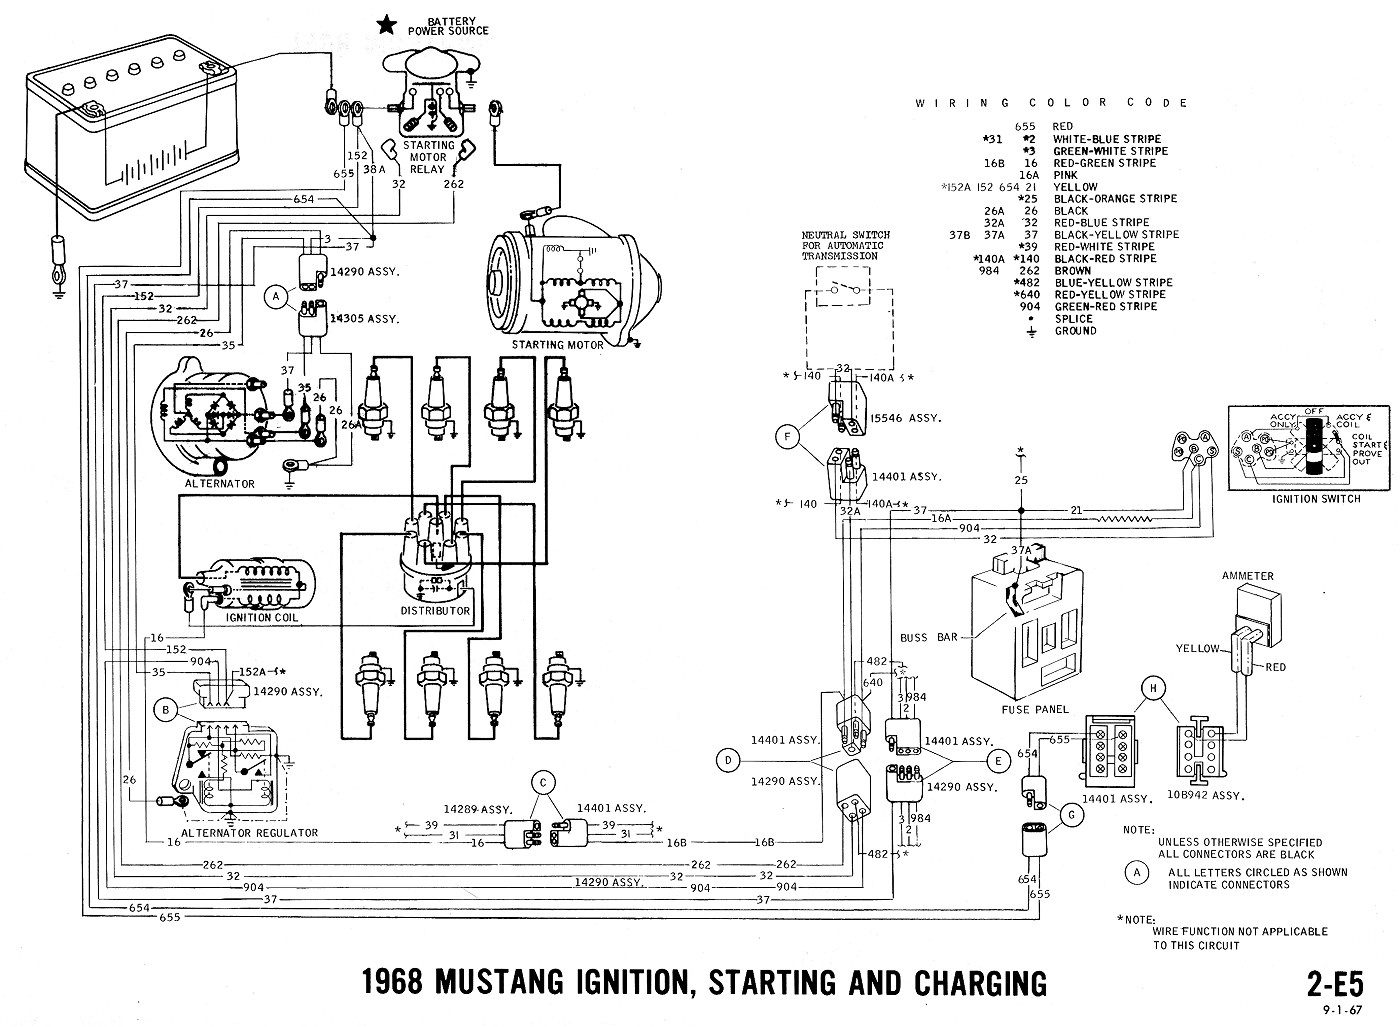 E5 diagram of starter wiring on 1980 camaro wiring diagram data oreo